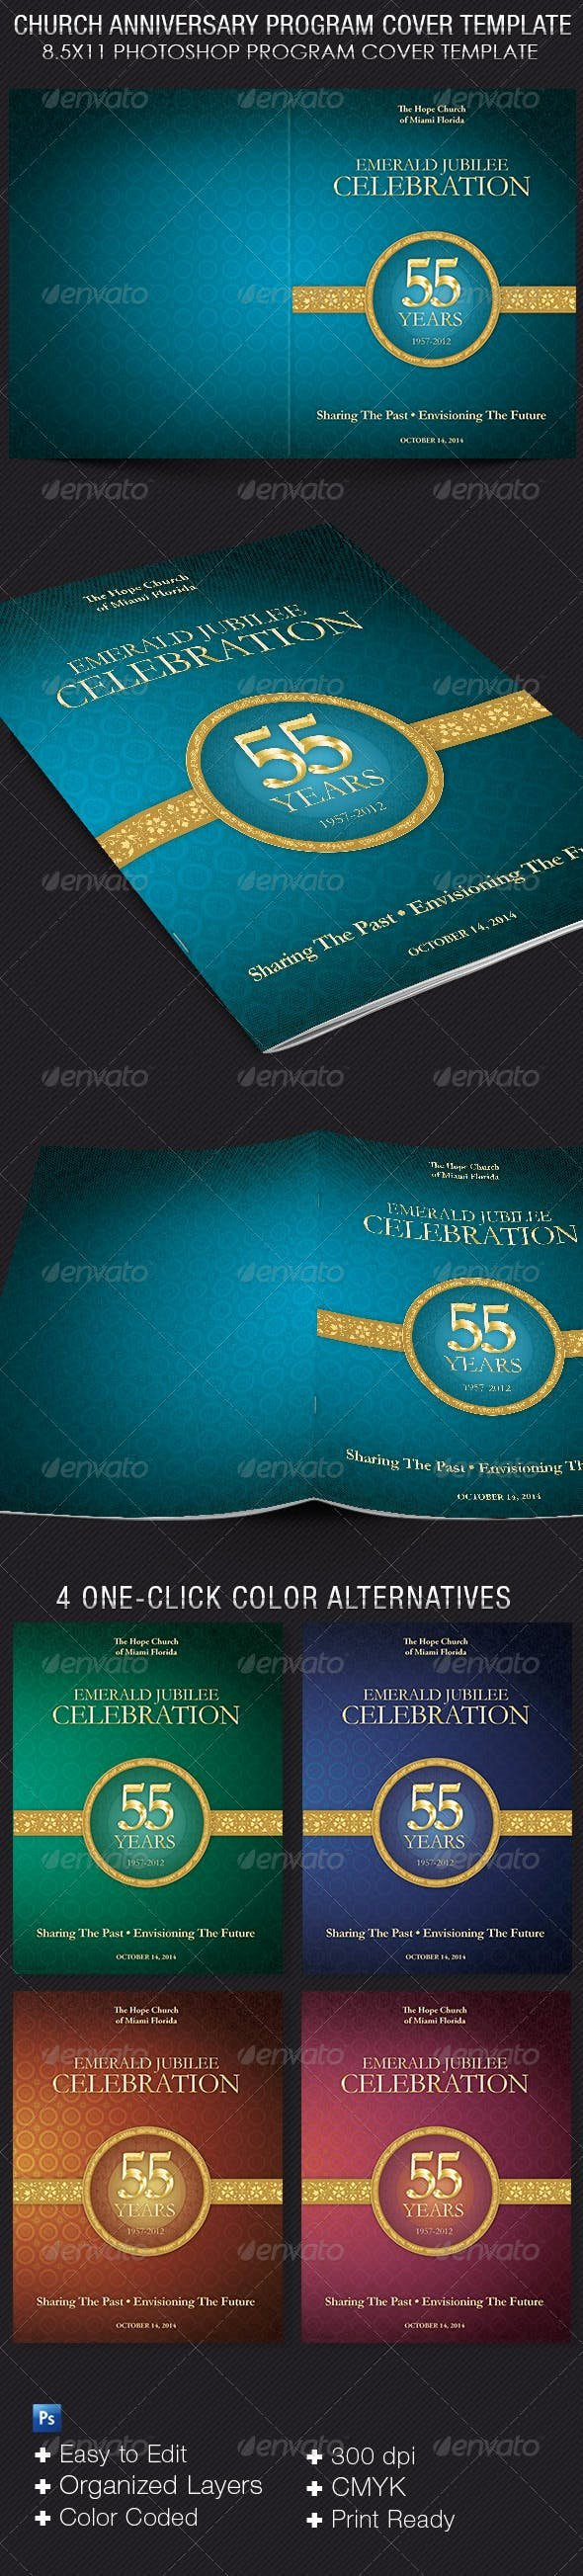 Church Anniversary Program Template Awesome Church Anniversary Program Cover Template by 4cgraphic